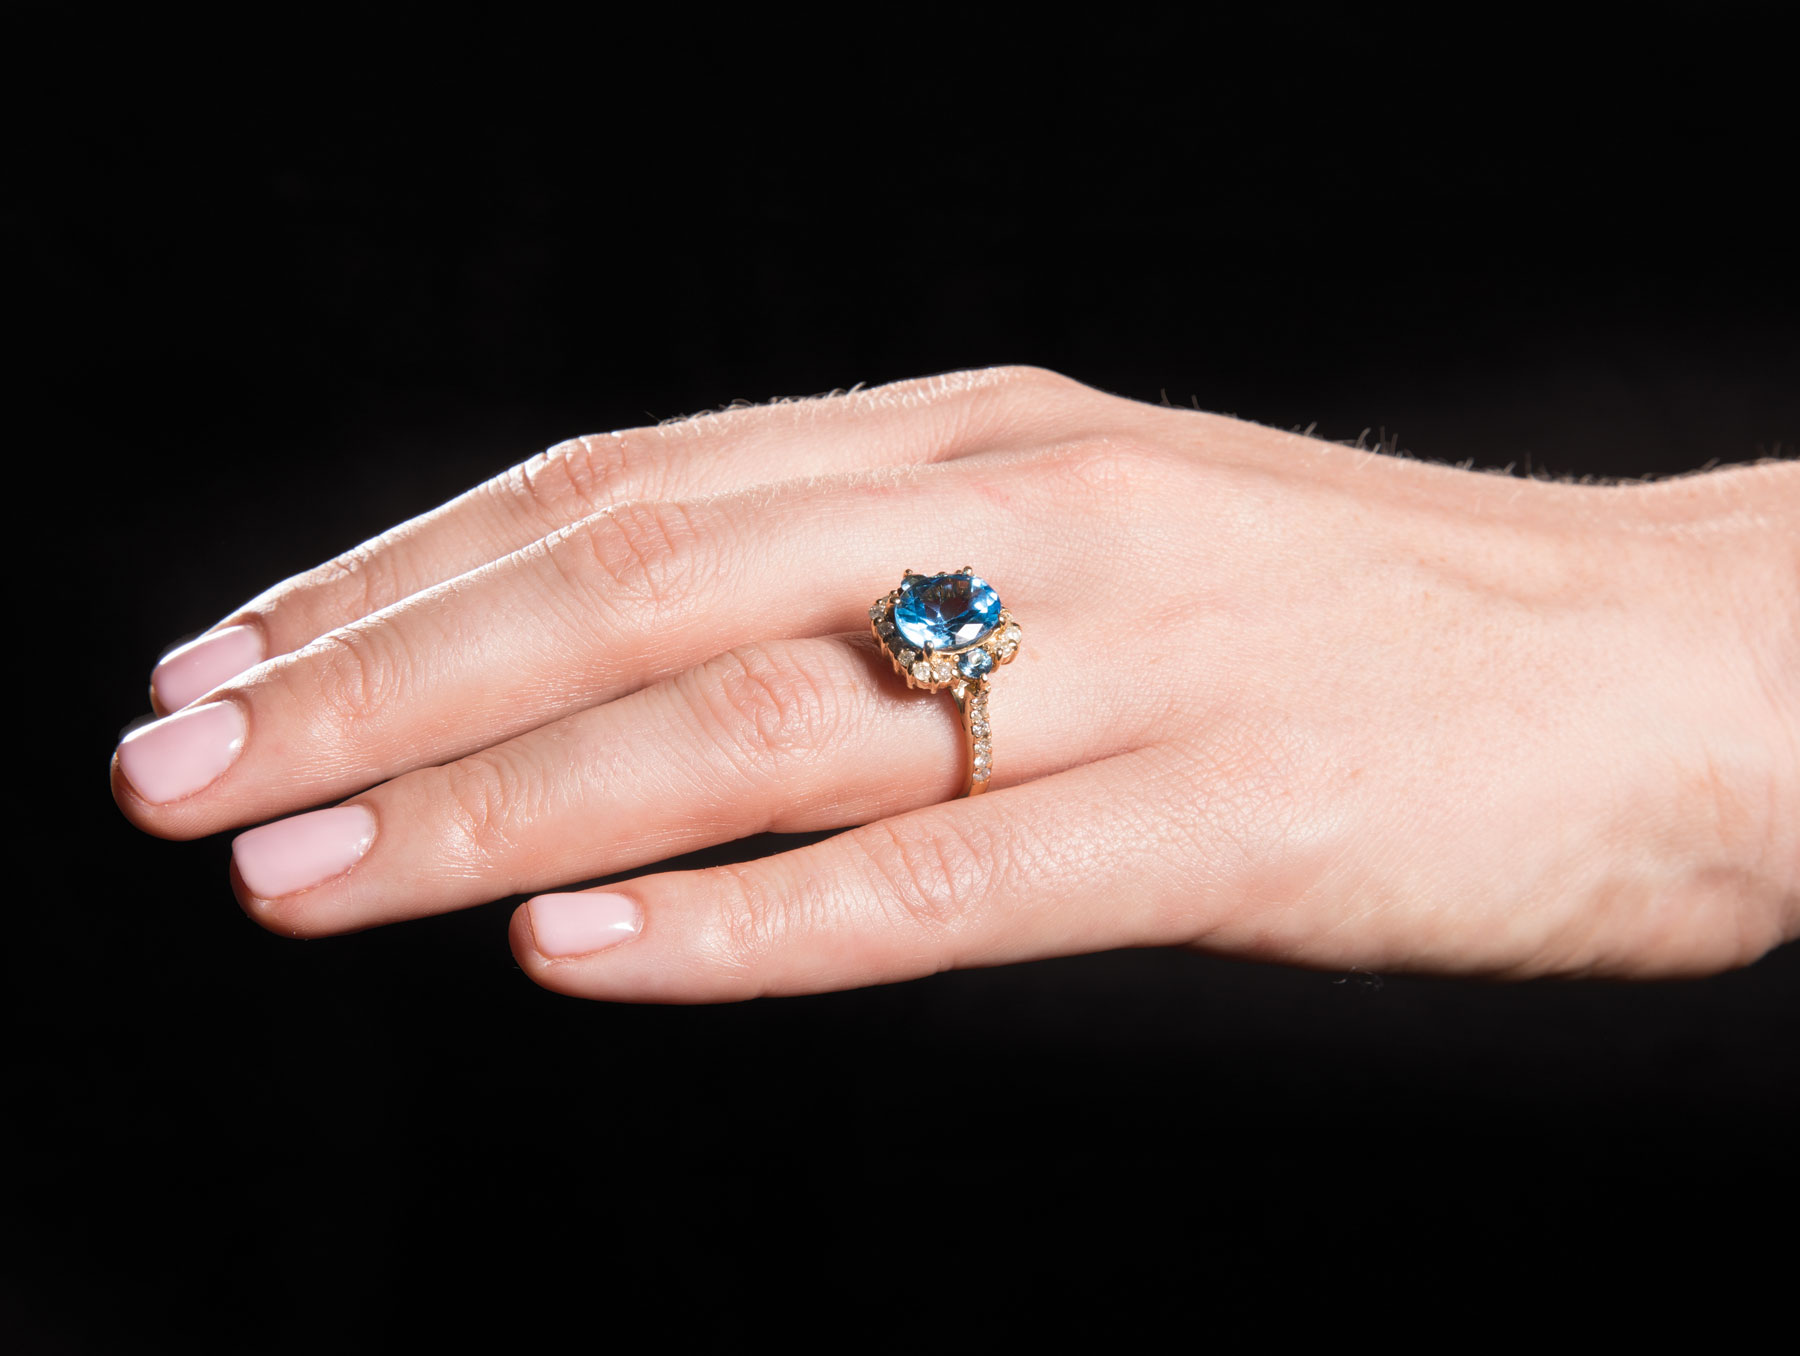 Lot 595 - 14 kt. White Gold, Blue Topaz and Diamond Ring , central round topaz flanked by 2 smaller stones,